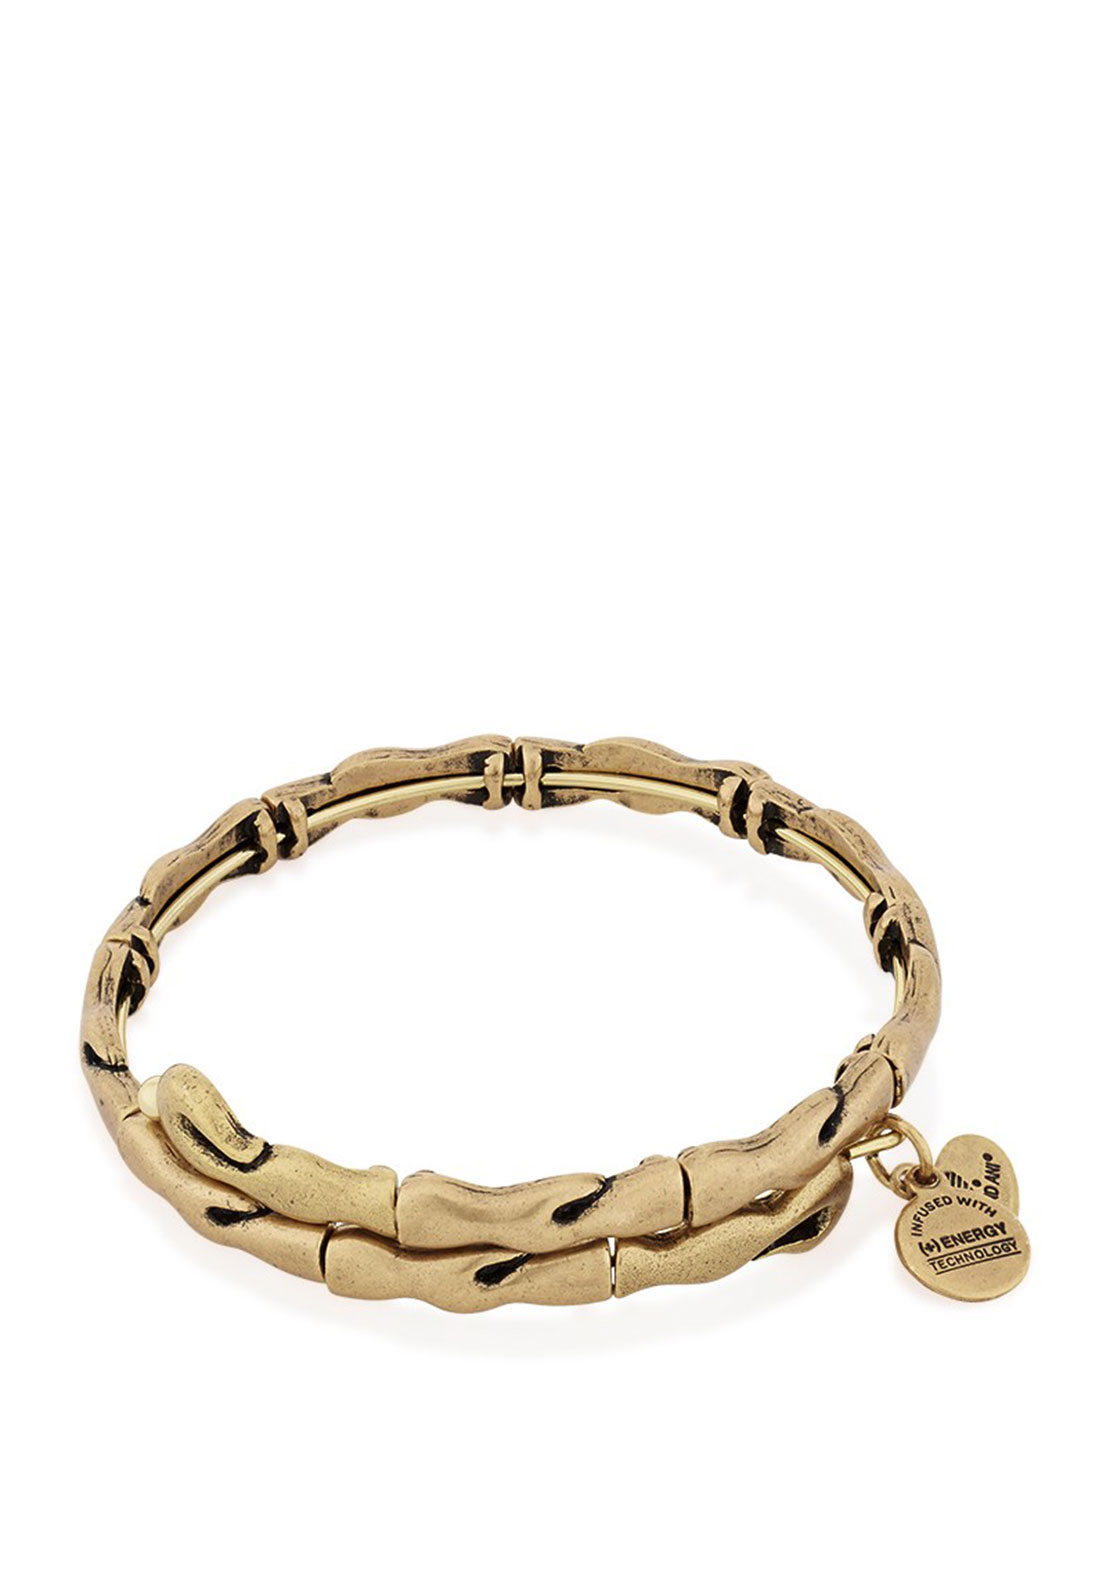 Alex and Ani Water Wrap Bracelet, Gold Plated